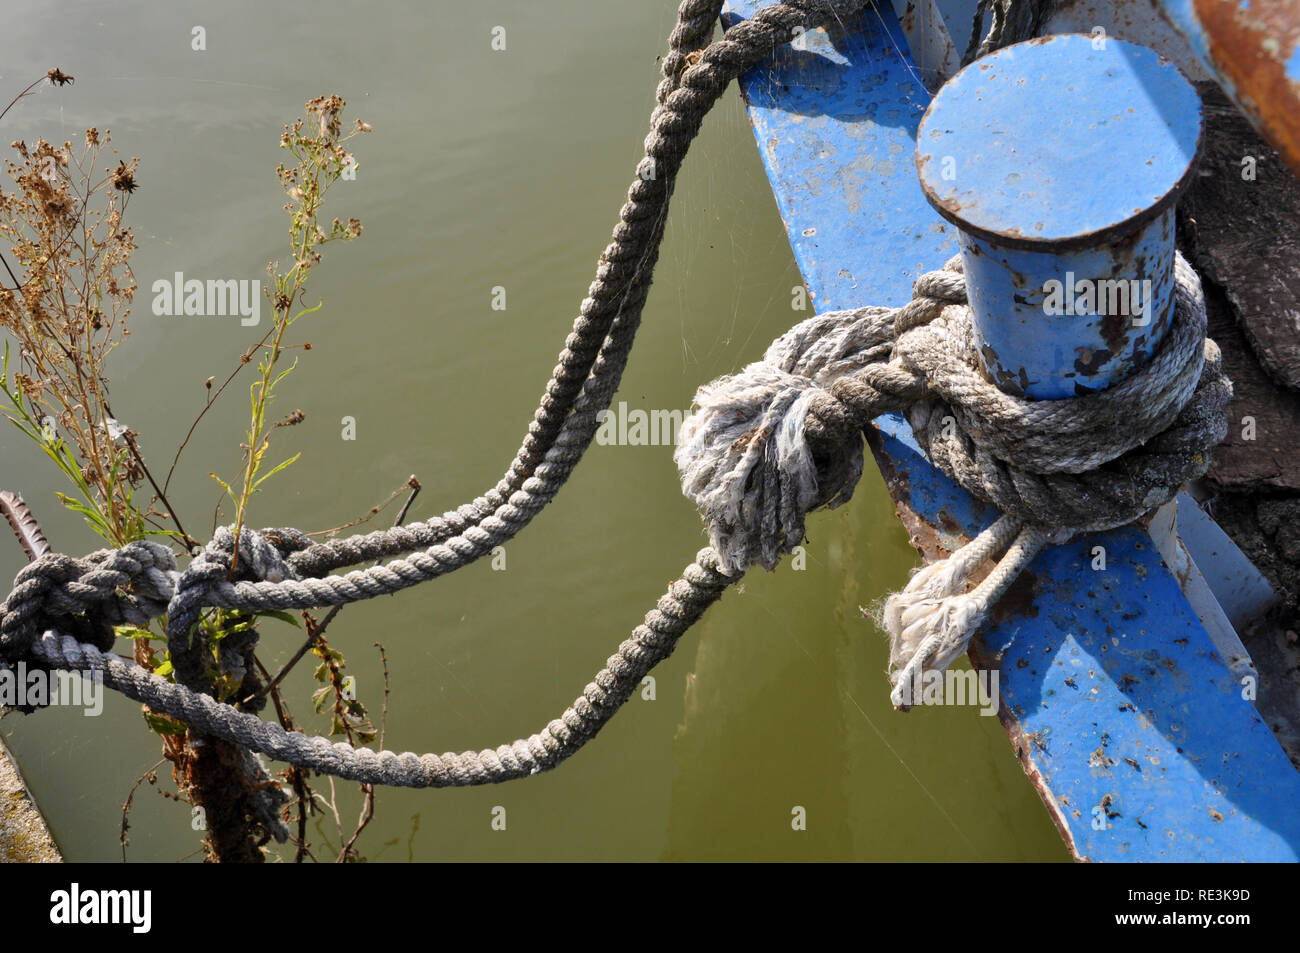 the rope  of an old boat on Kerkini lake - Greece - Stock Image